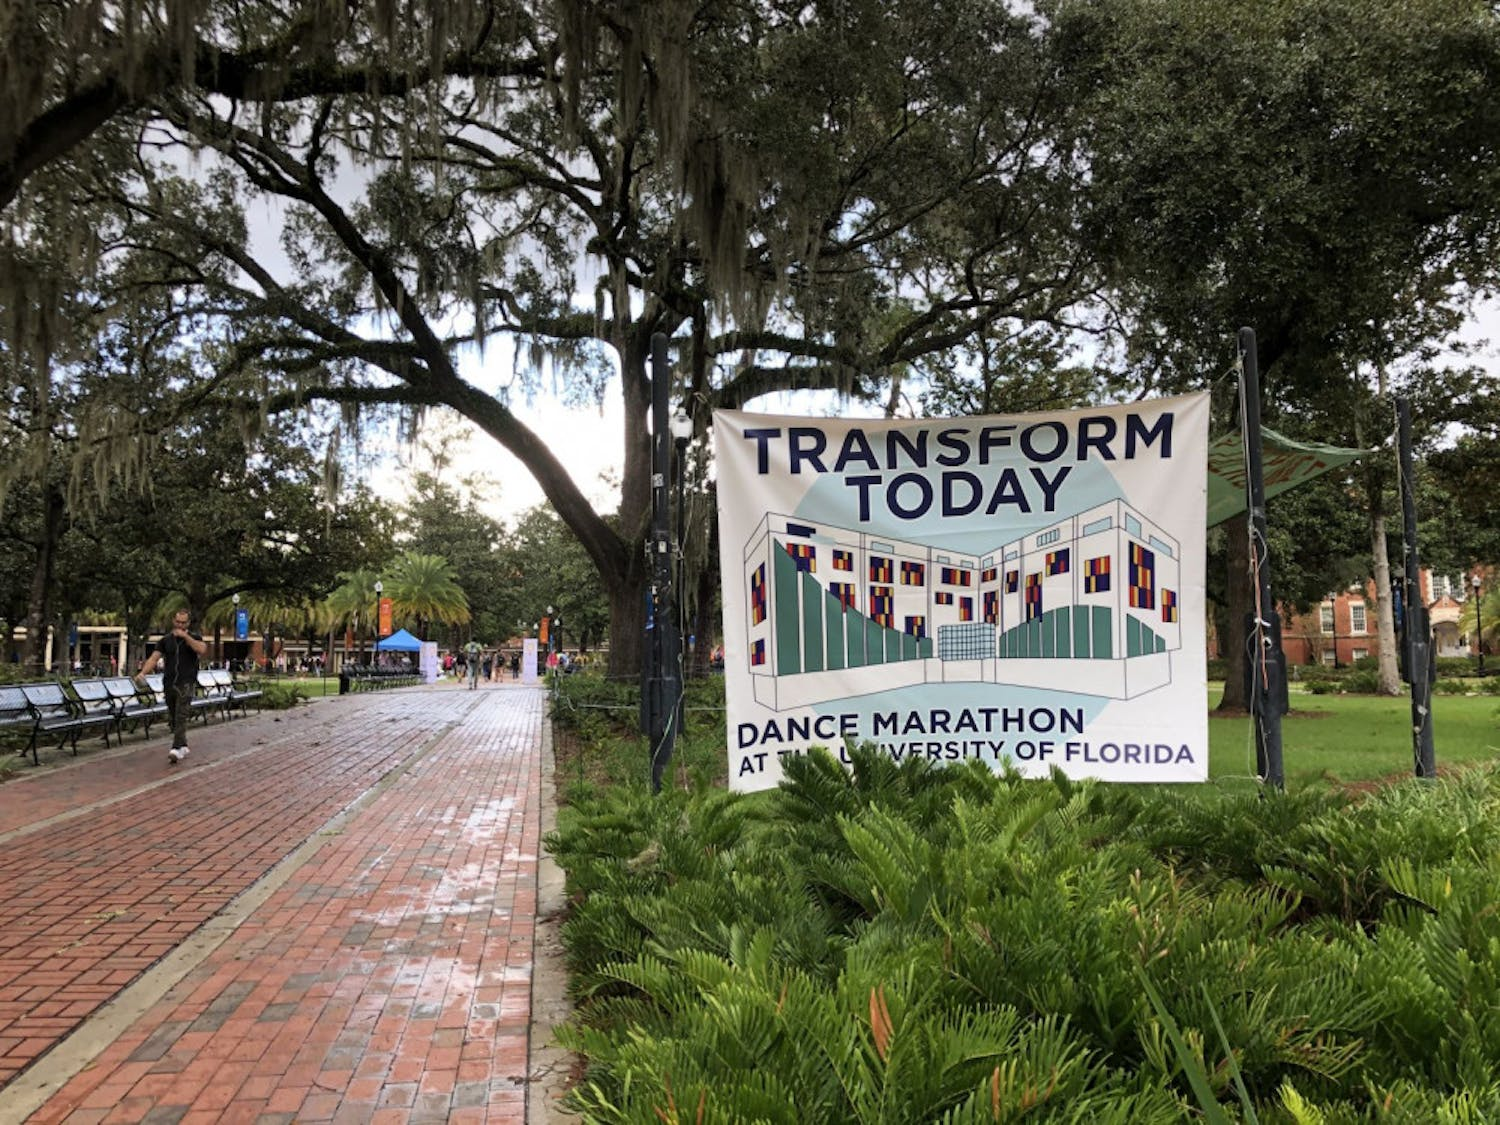 The sixth annual Transform Today fundraising push-day at UF aims to raise $650,000 in 26.2 hours, from Tuesday 8 a.m to today at 10:12 a.m